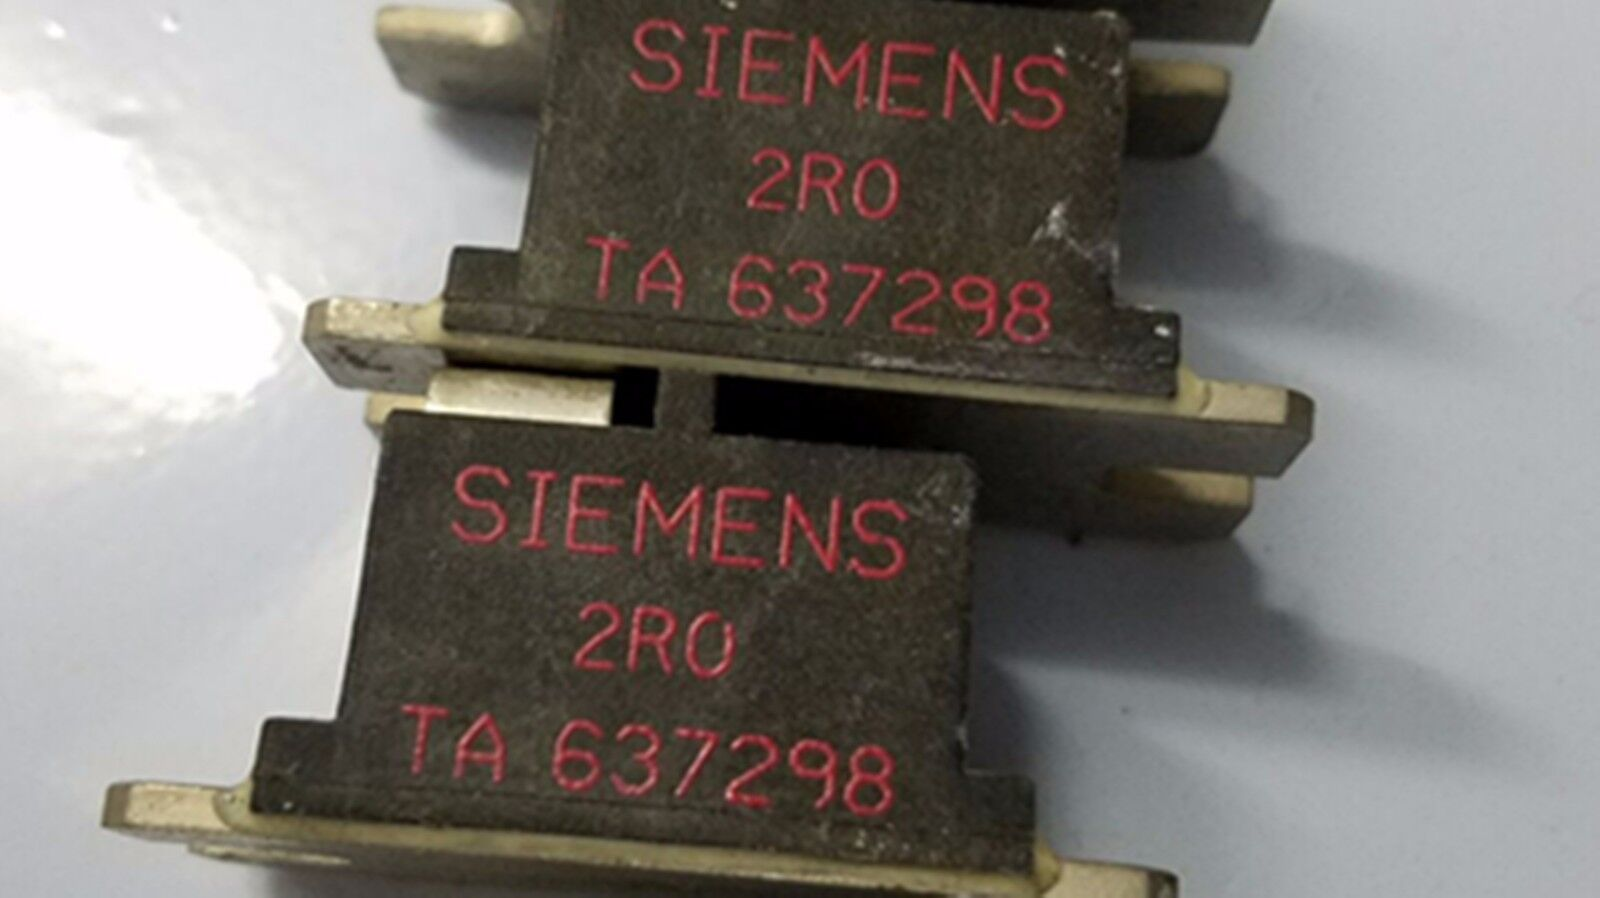 1PC Siemens congreener 6SE70 for resistance TA637298-2R0 2RO for industry use